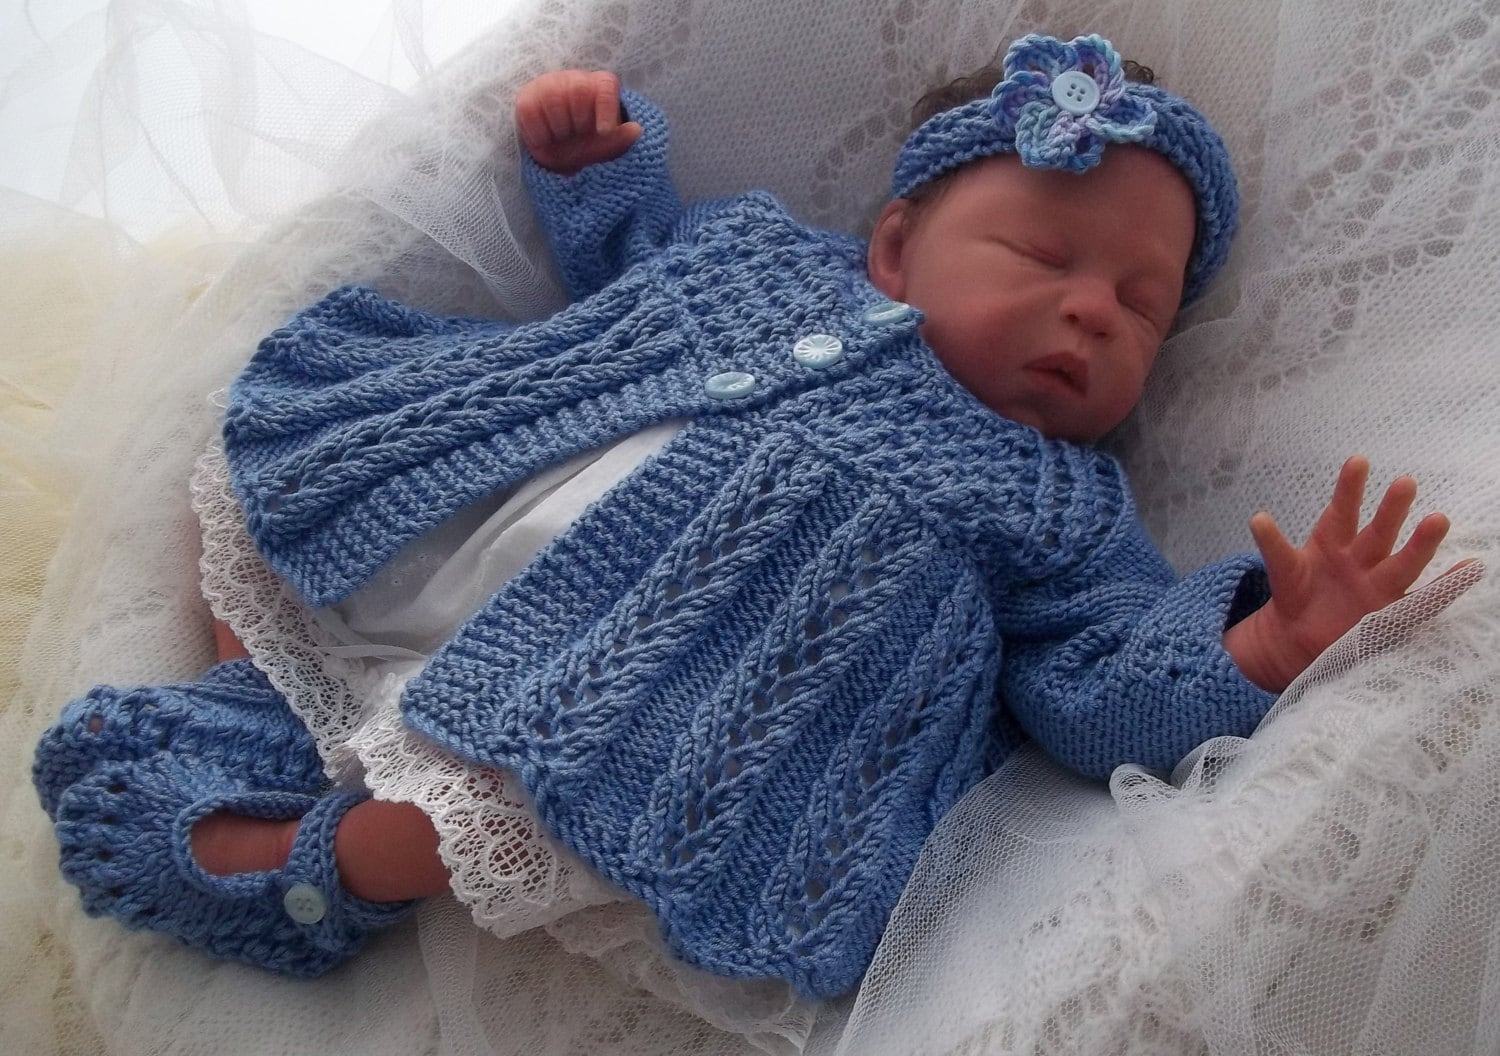 Knitting Designs For Newborn Babies : Baby knitting pattern download girls